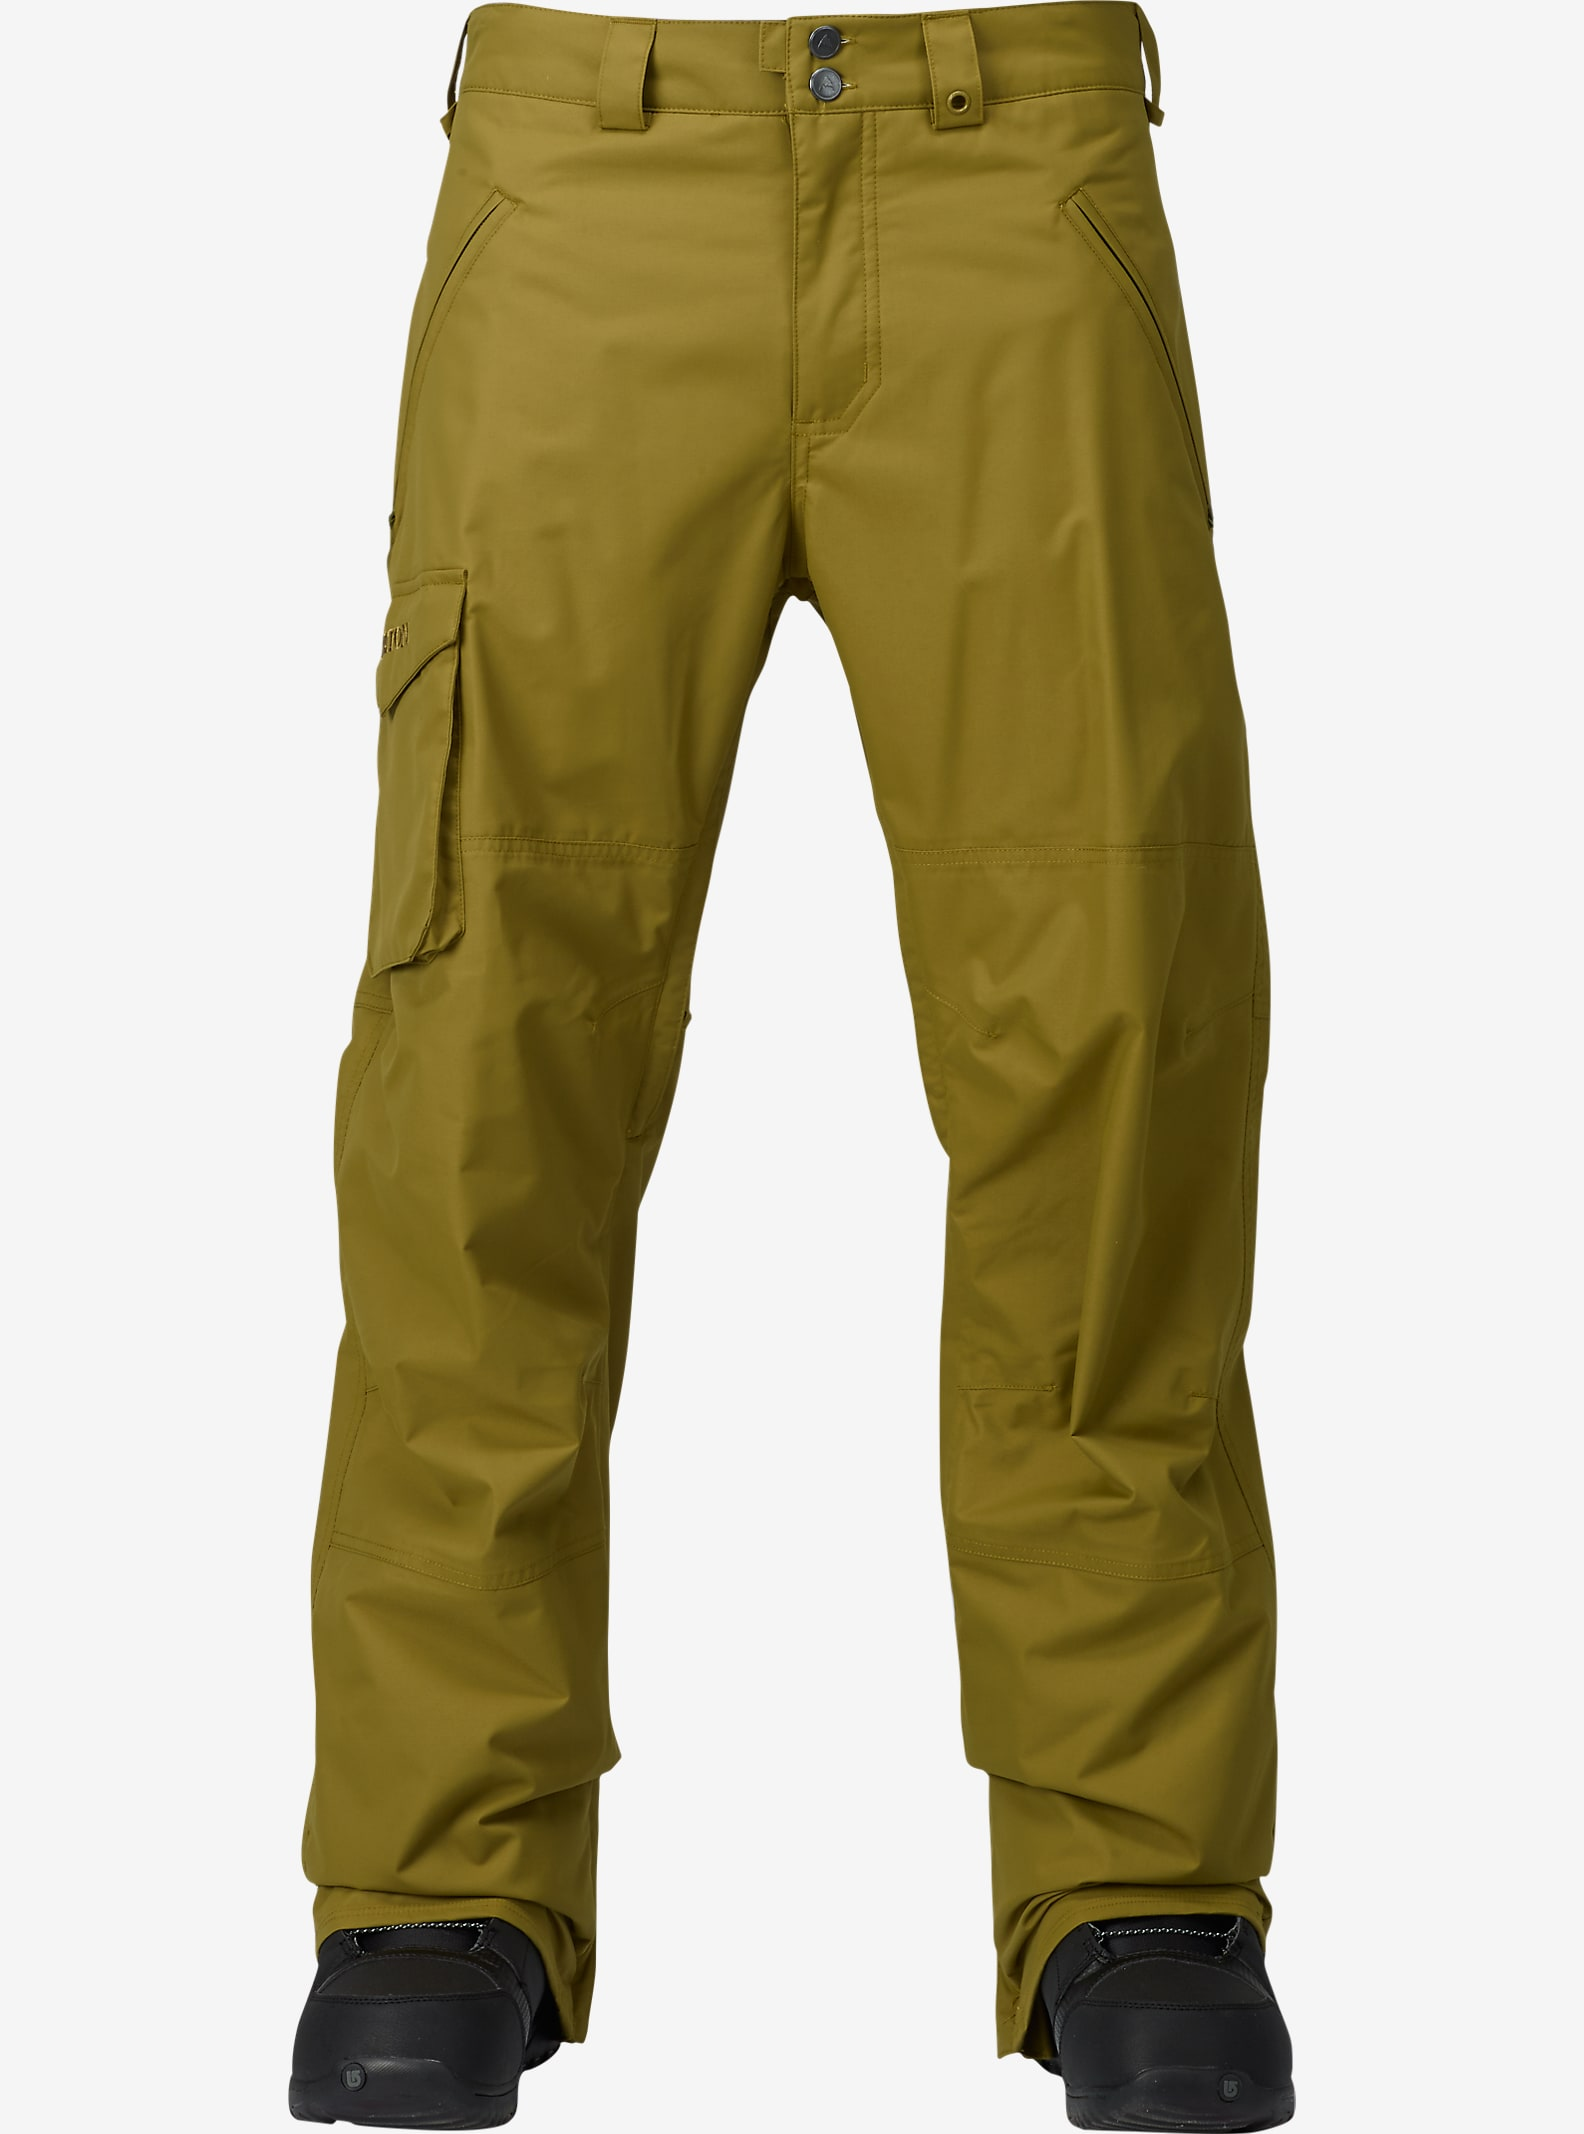 Burton Covert Pant shown in Fir